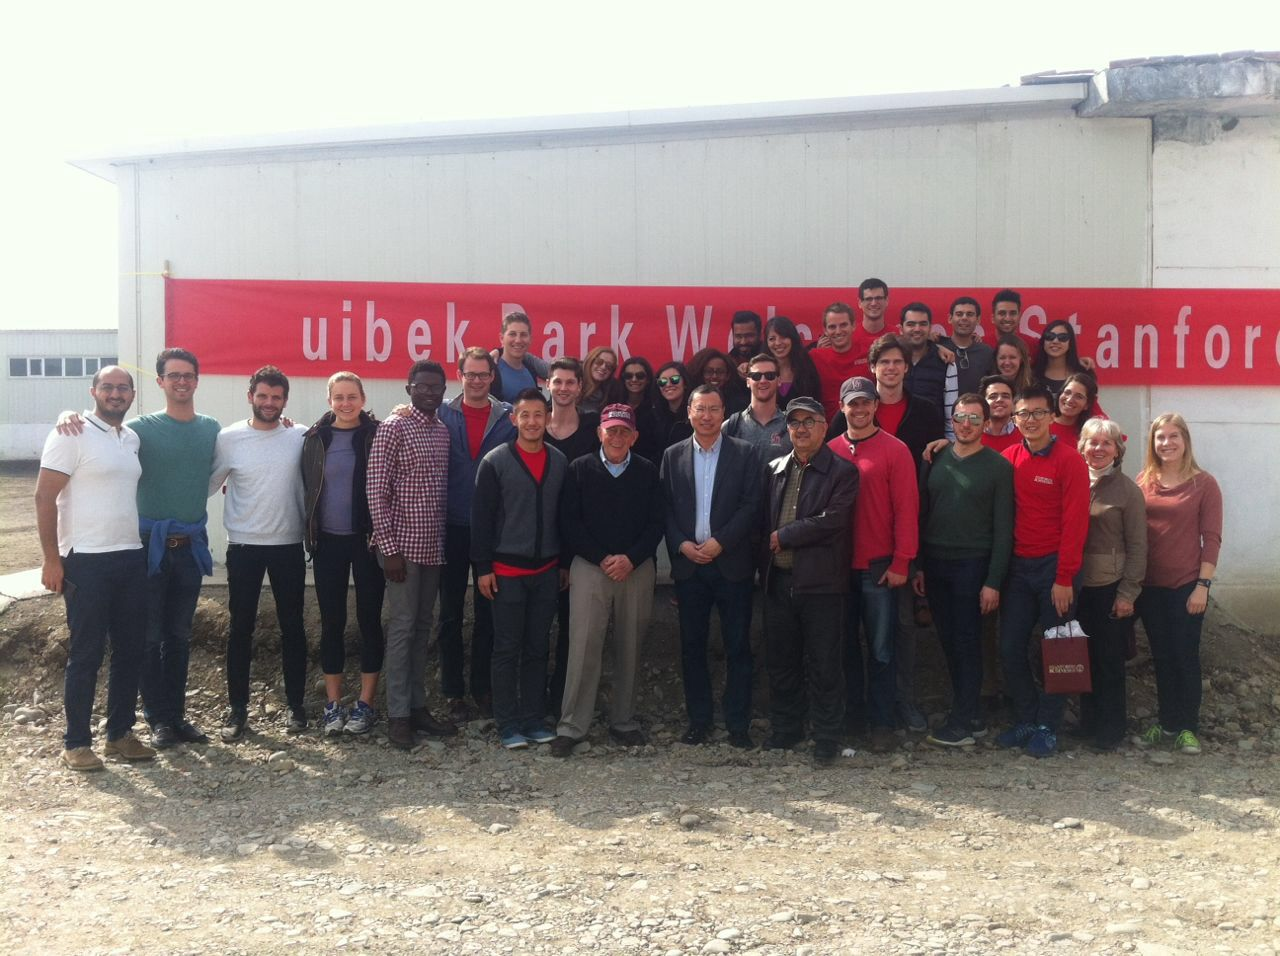 Stanford University Graduate School of Business MBA students visit uibek